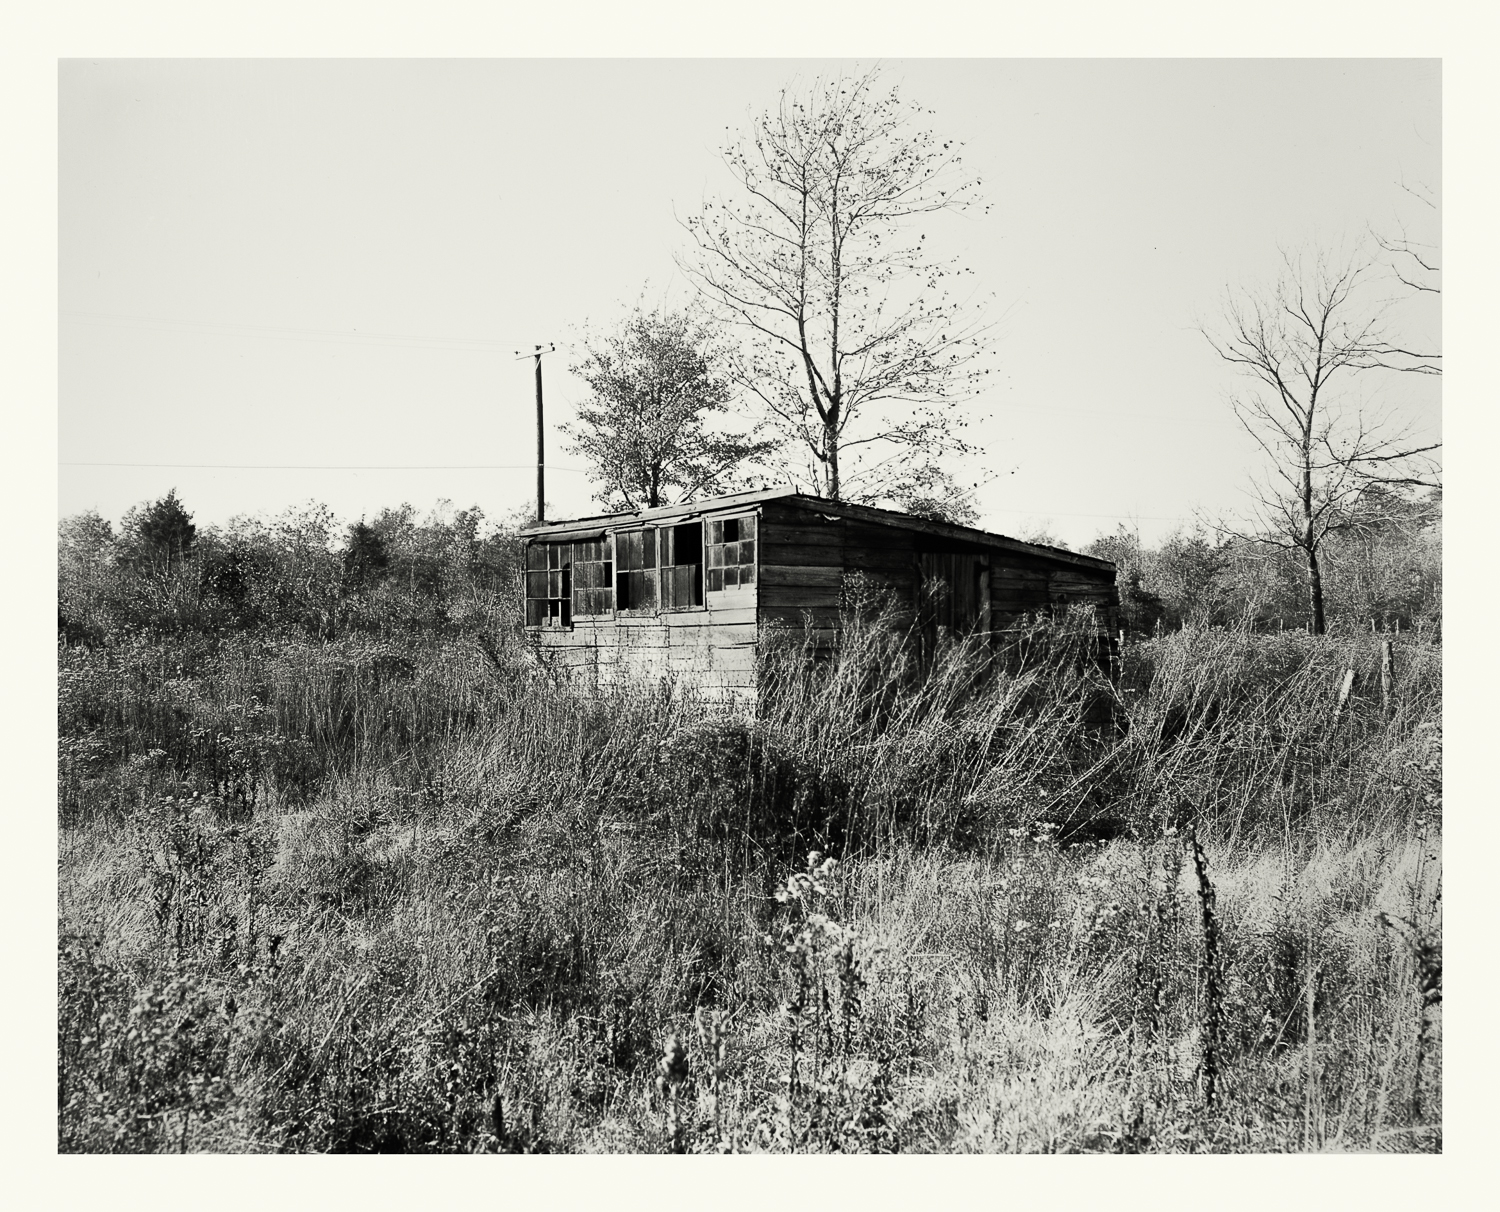 """Photograph No. PC 411. """"Photograph surveying shacks and shanties that were vacated and subsequently removed prior to the construction of the Cohasset Naval Ammunition Depot Annex."""" c. 1930; Records of Naval Districts and Shore Establishments, RG 181, NARA Boston."""